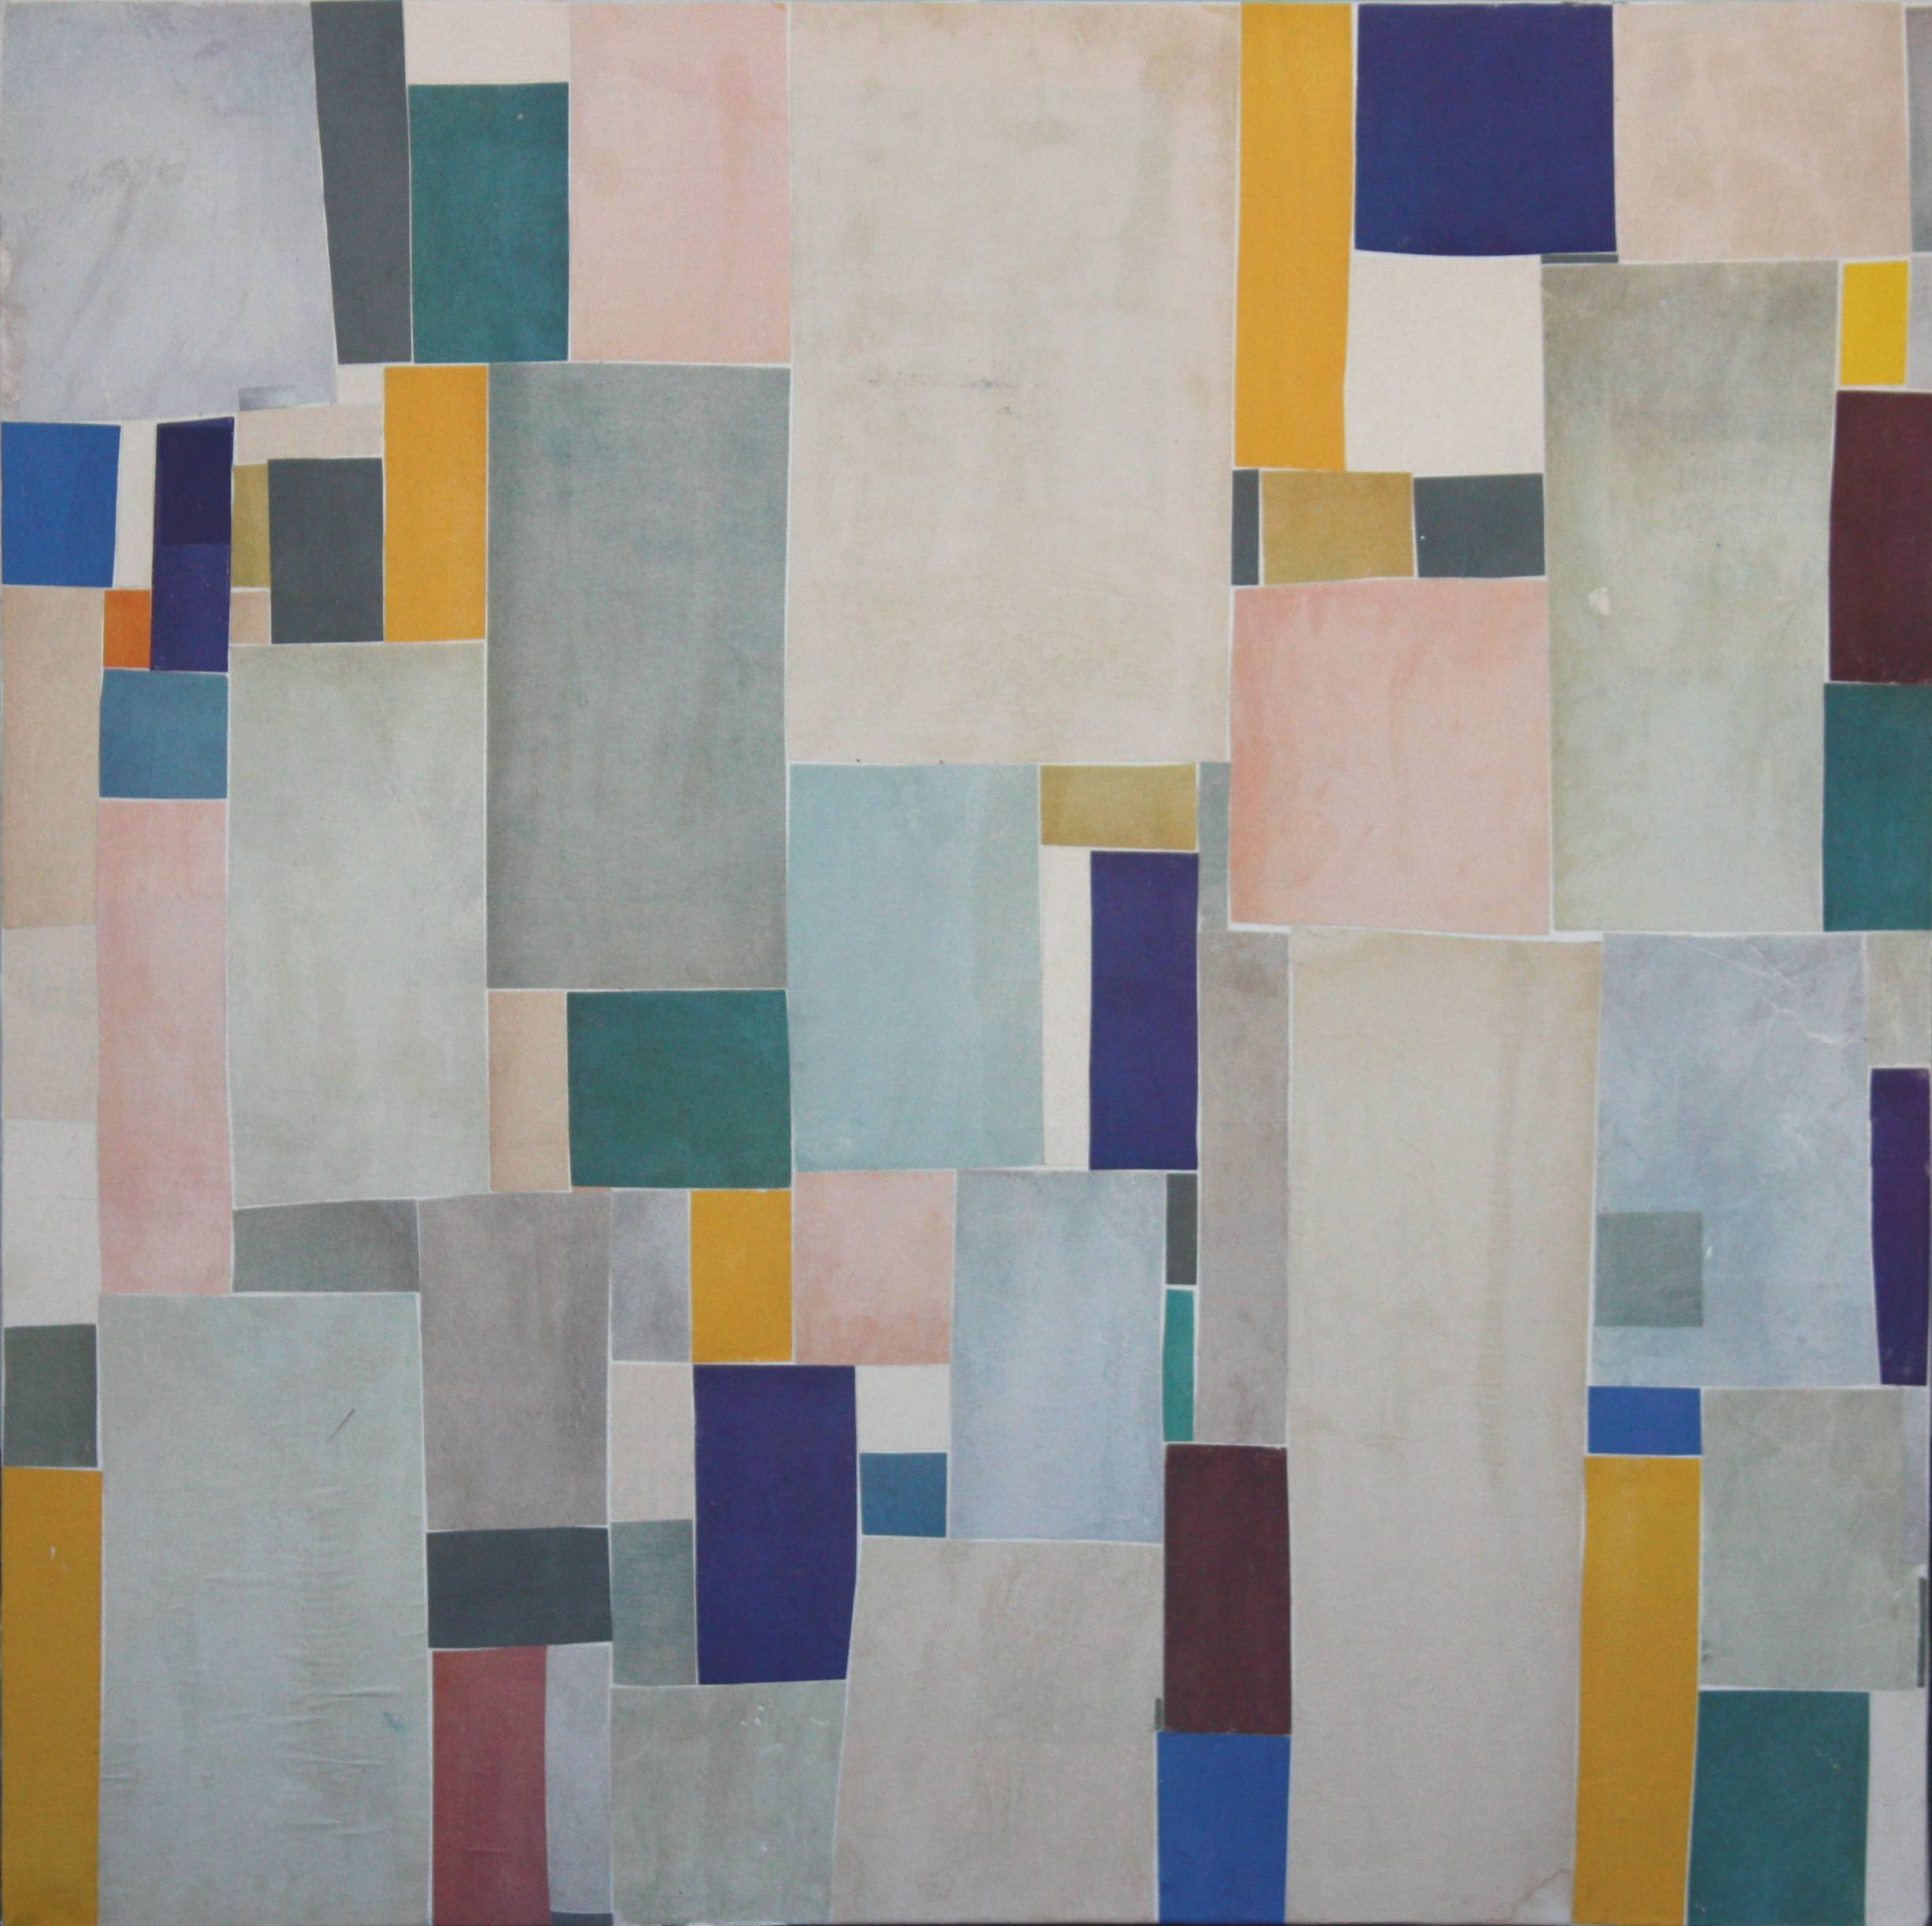 Post Dogmatist Painting #509 - 2011 - 20x20 inches - collage on canvas